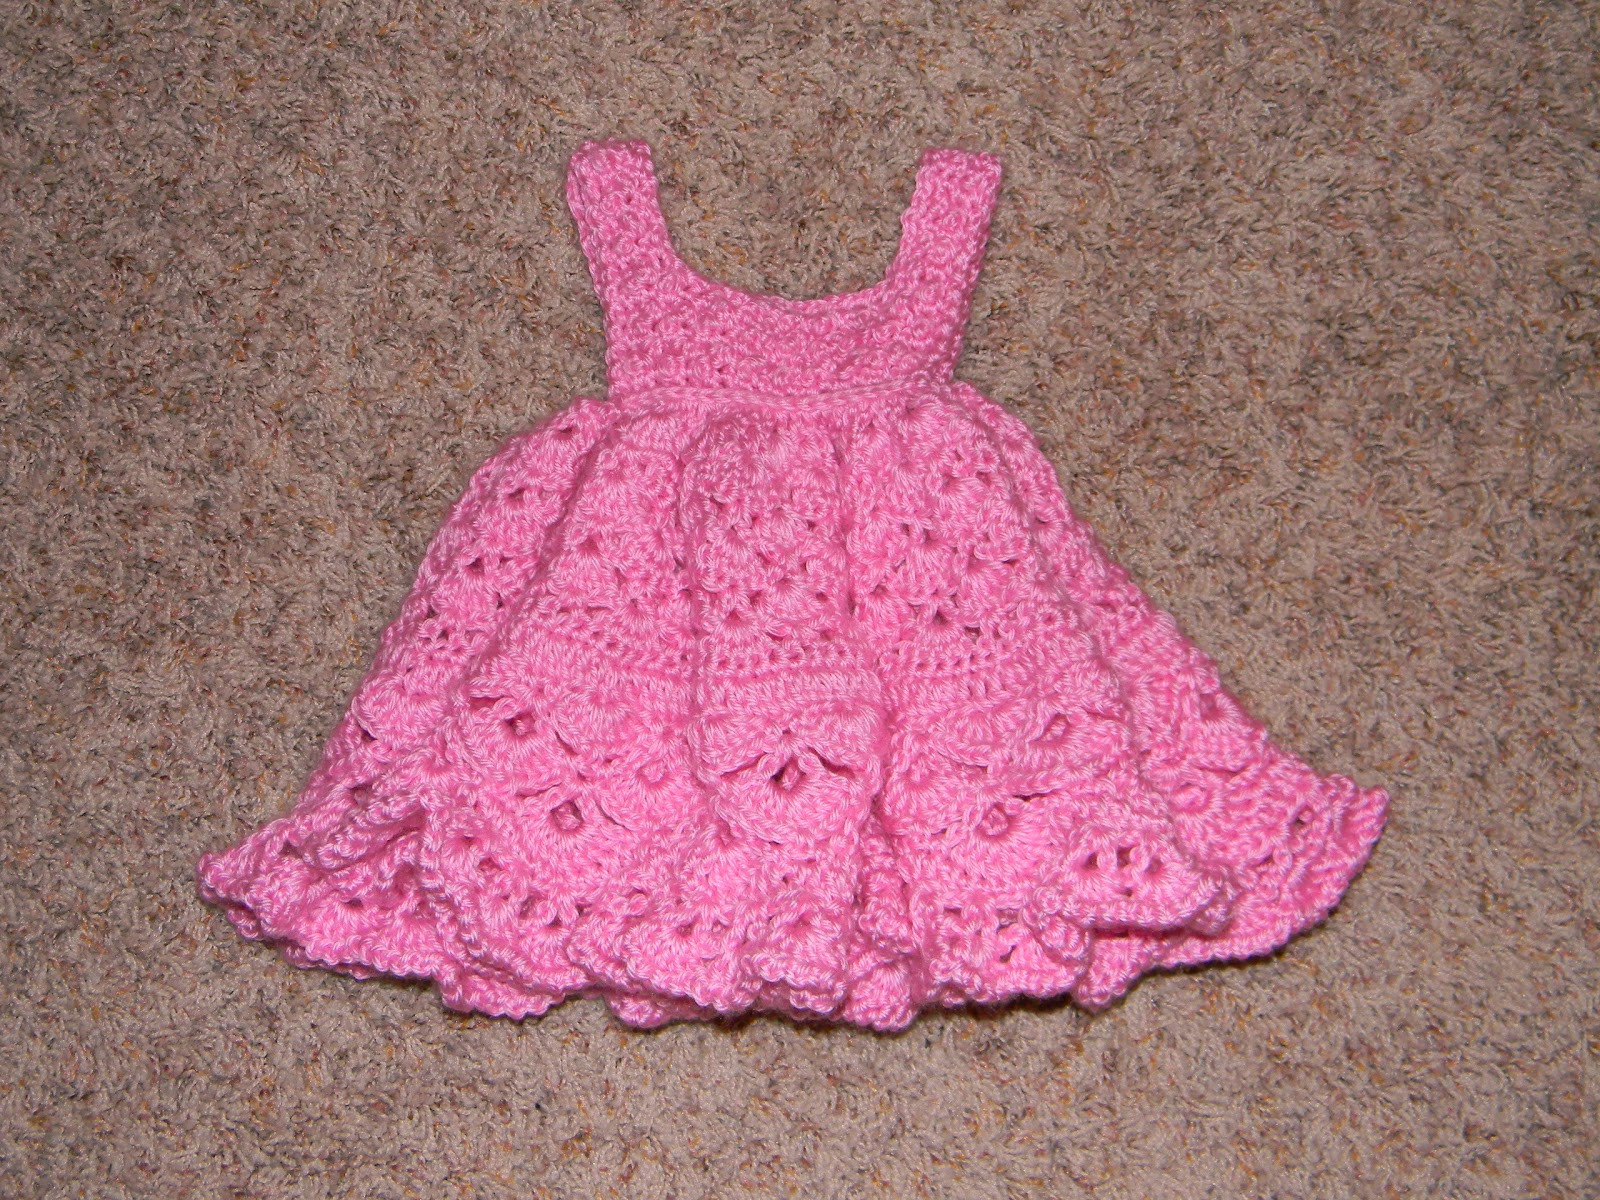 Free Baby Girl Crochet Patterns Inspirational Sassy S Crafty Creations Crochet Baby Girl Dress Of Fresh 40 Pics Free Baby Girl Crochet Patterns